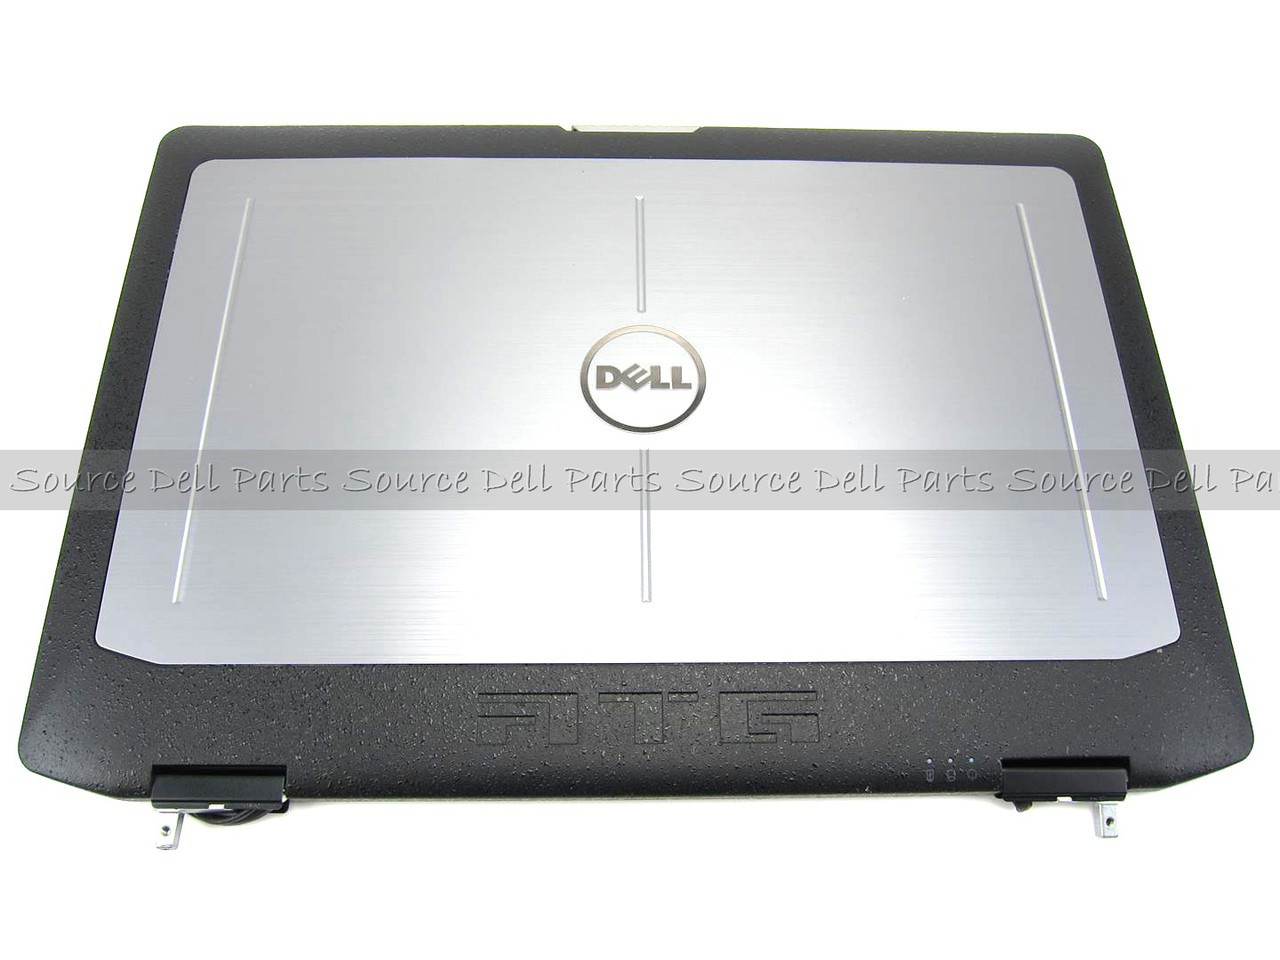 Dell Latitude E6430 ATG Lcd Back Cover with Hinges For NonTouch Screen - 3N50N (B)